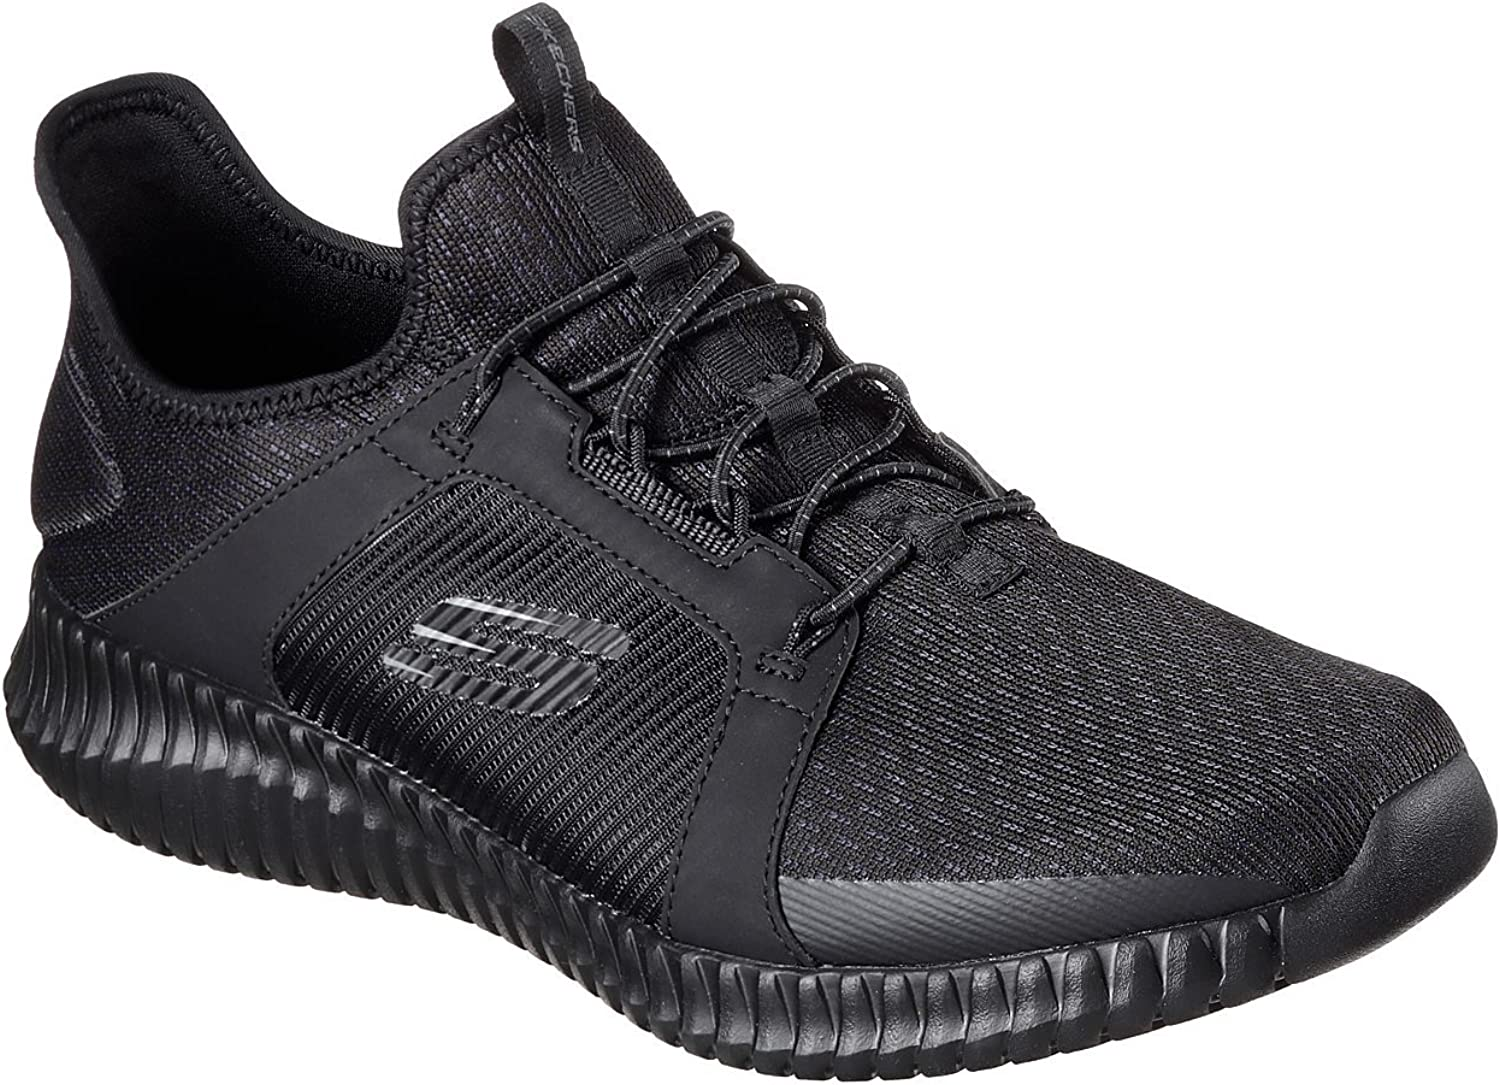 Skechers Mens Elite Flex Sneakers